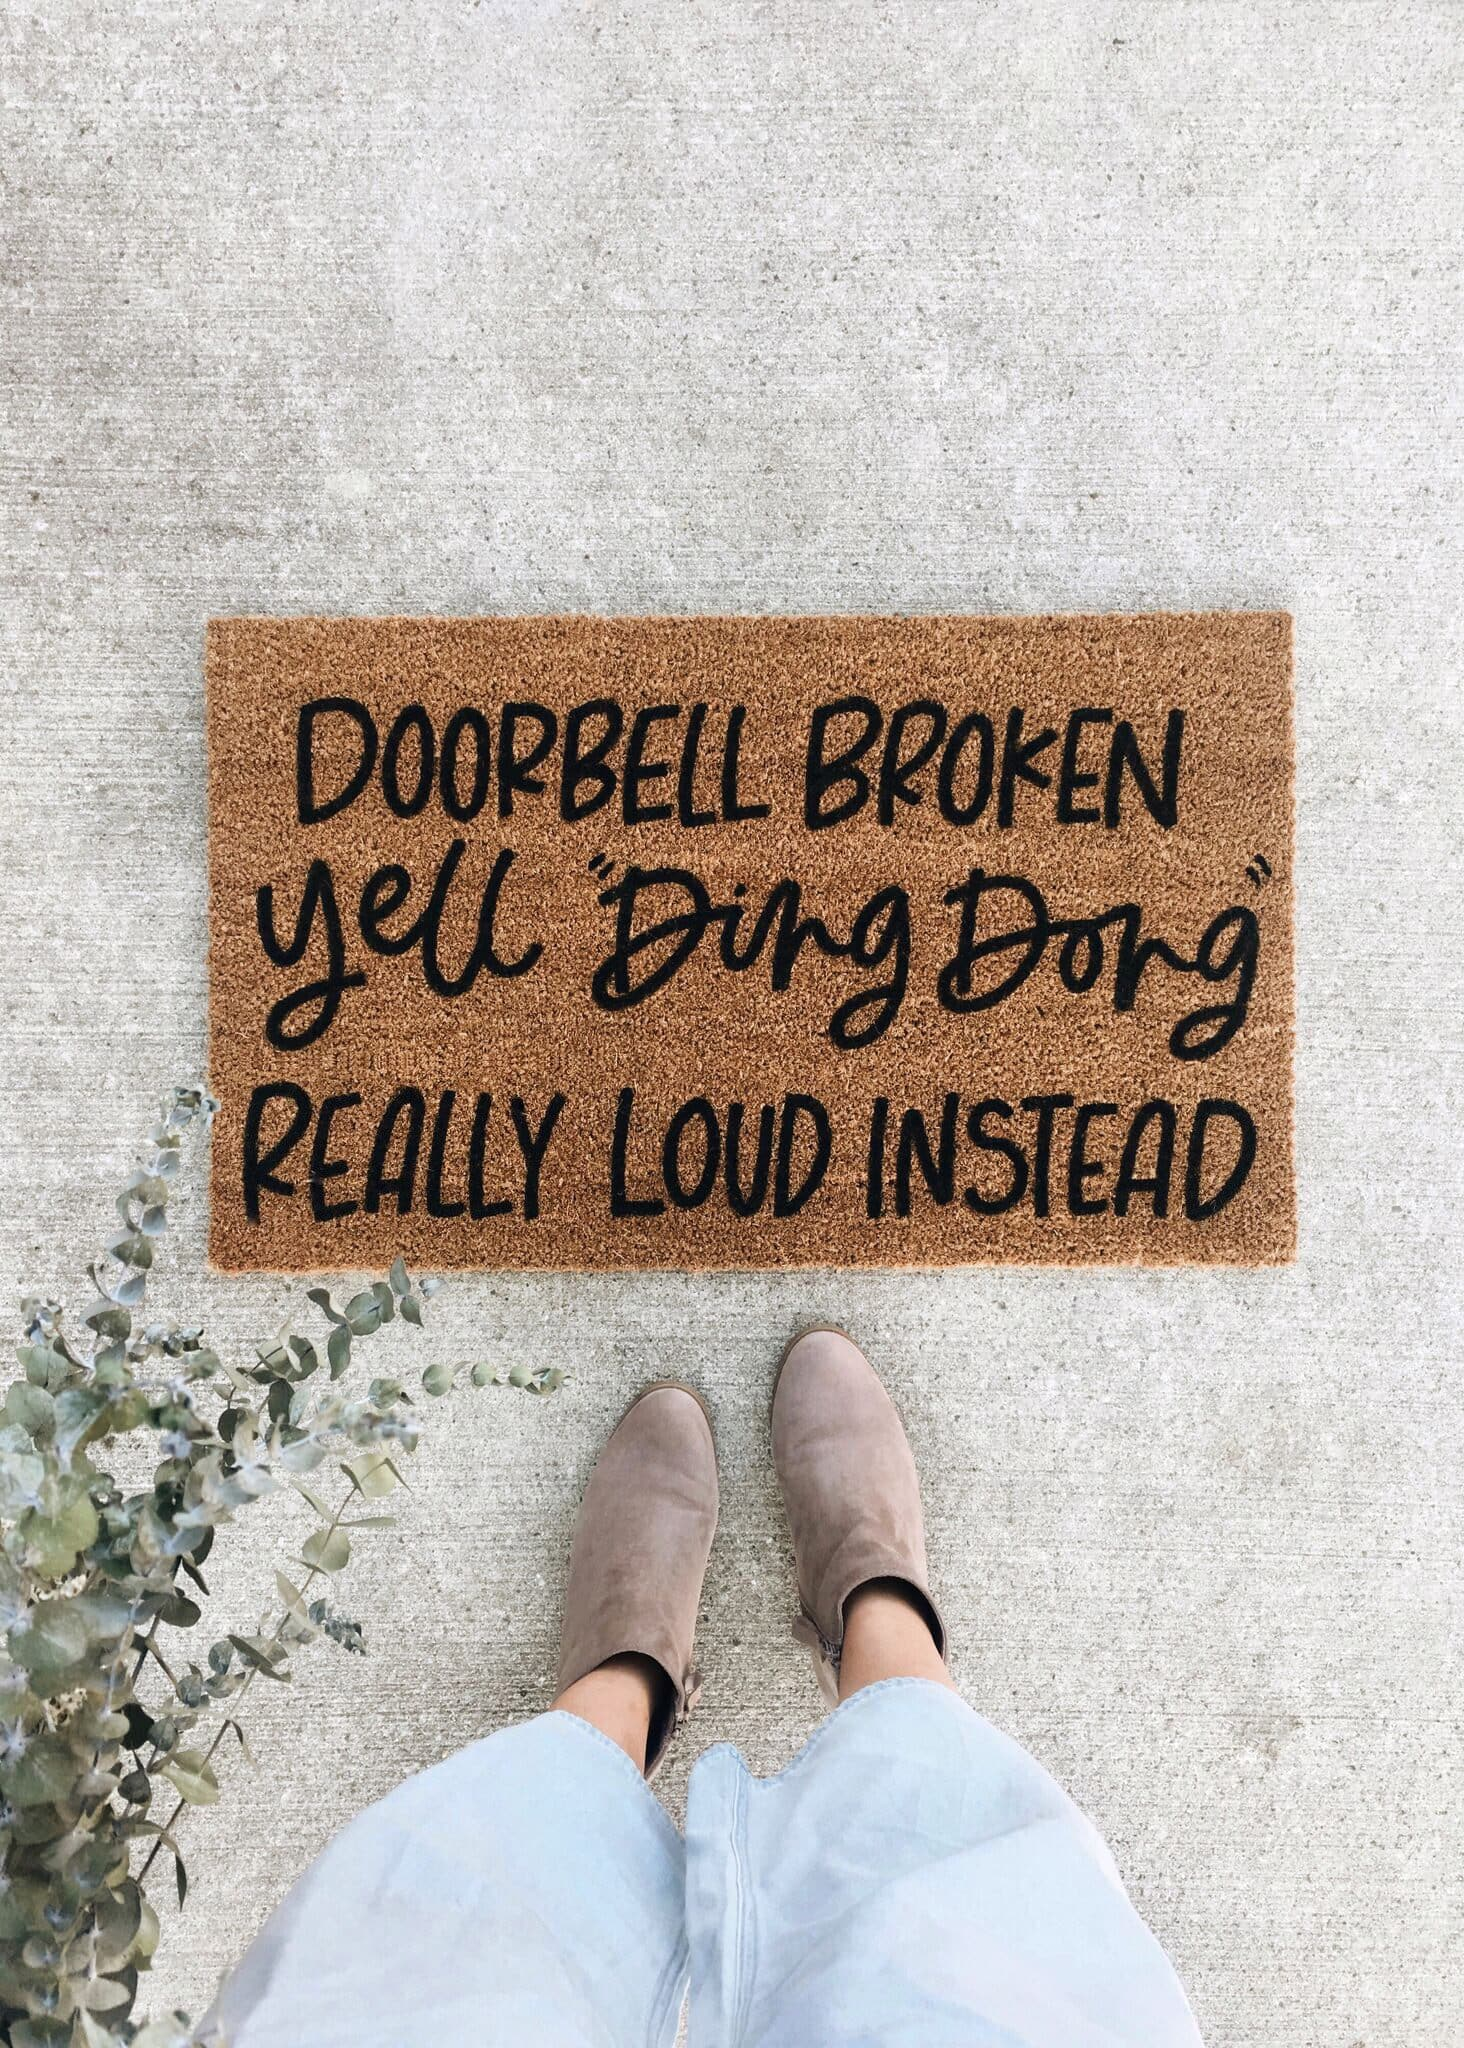 yell ding-dong doormat